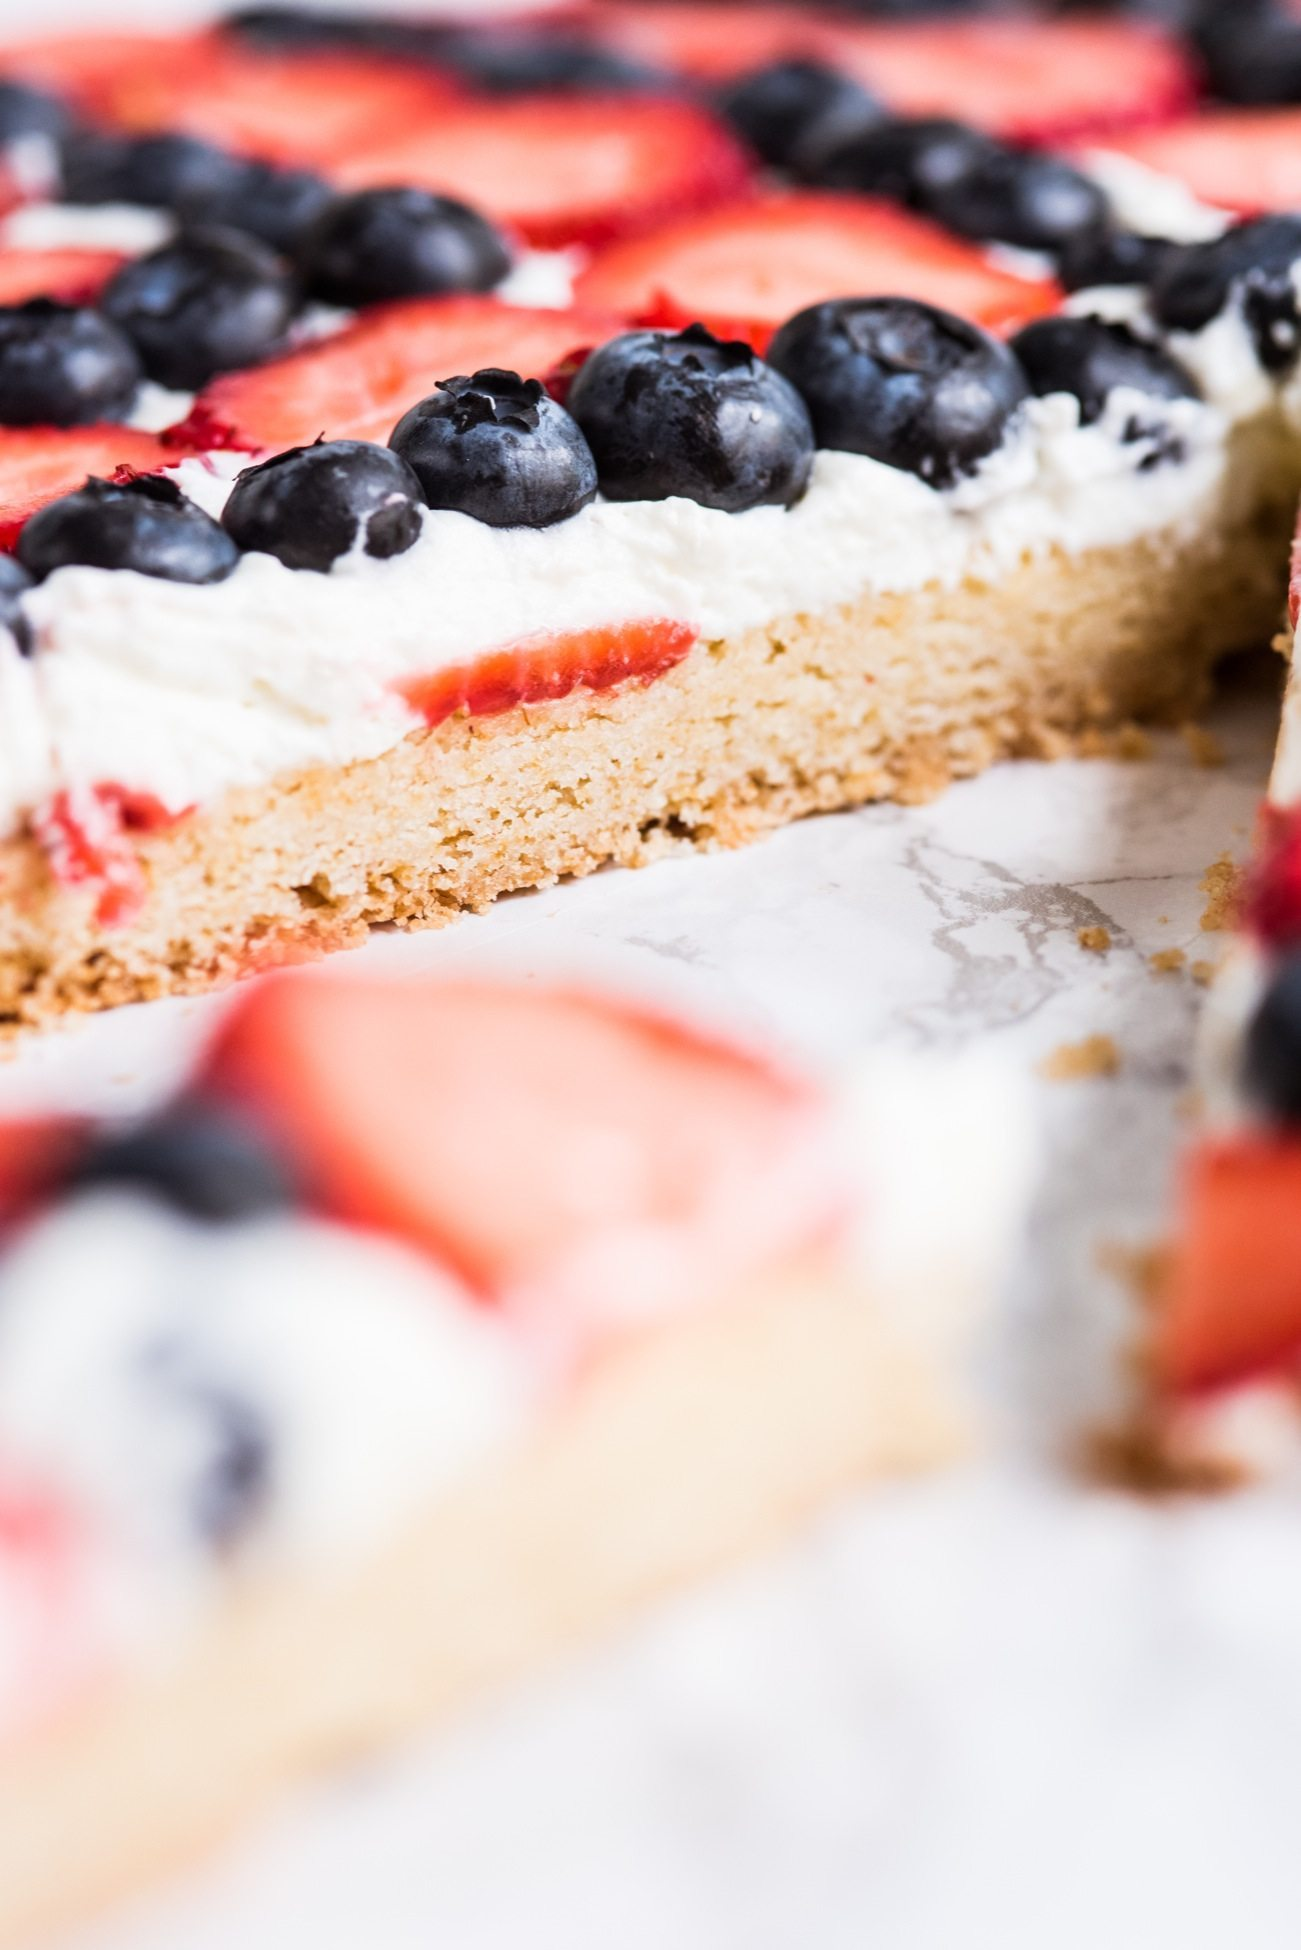 4th of July Desserts: Red, White and Blue Berry Fruit Pizza | 4th of July recipes, entertaining tips, party ideas, 4th of July ideas and more from @cydconverse